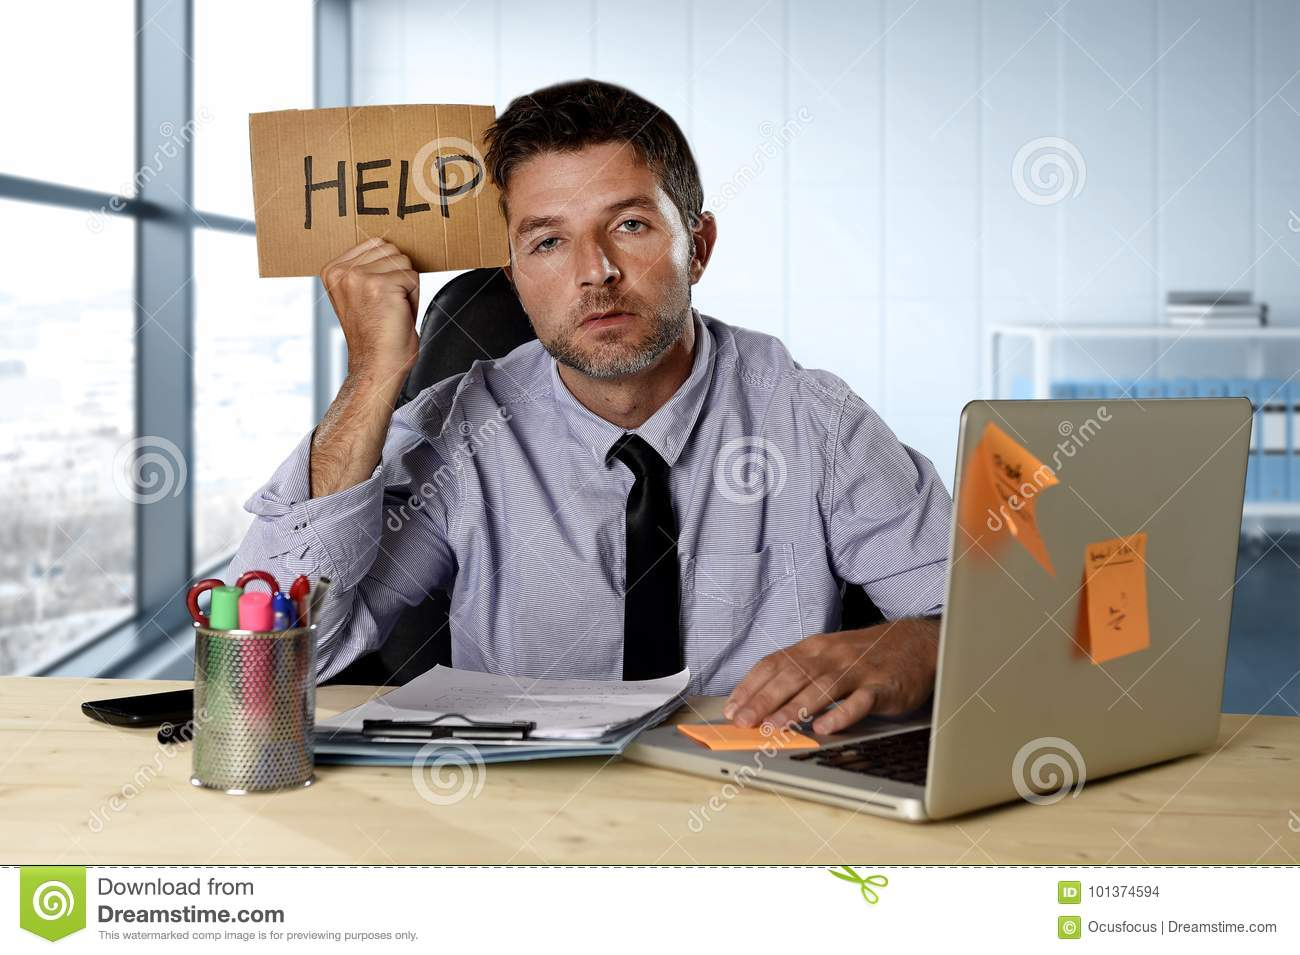 Businessman suffering stress working at computer desk holding sign asking for help looking tired exhausted